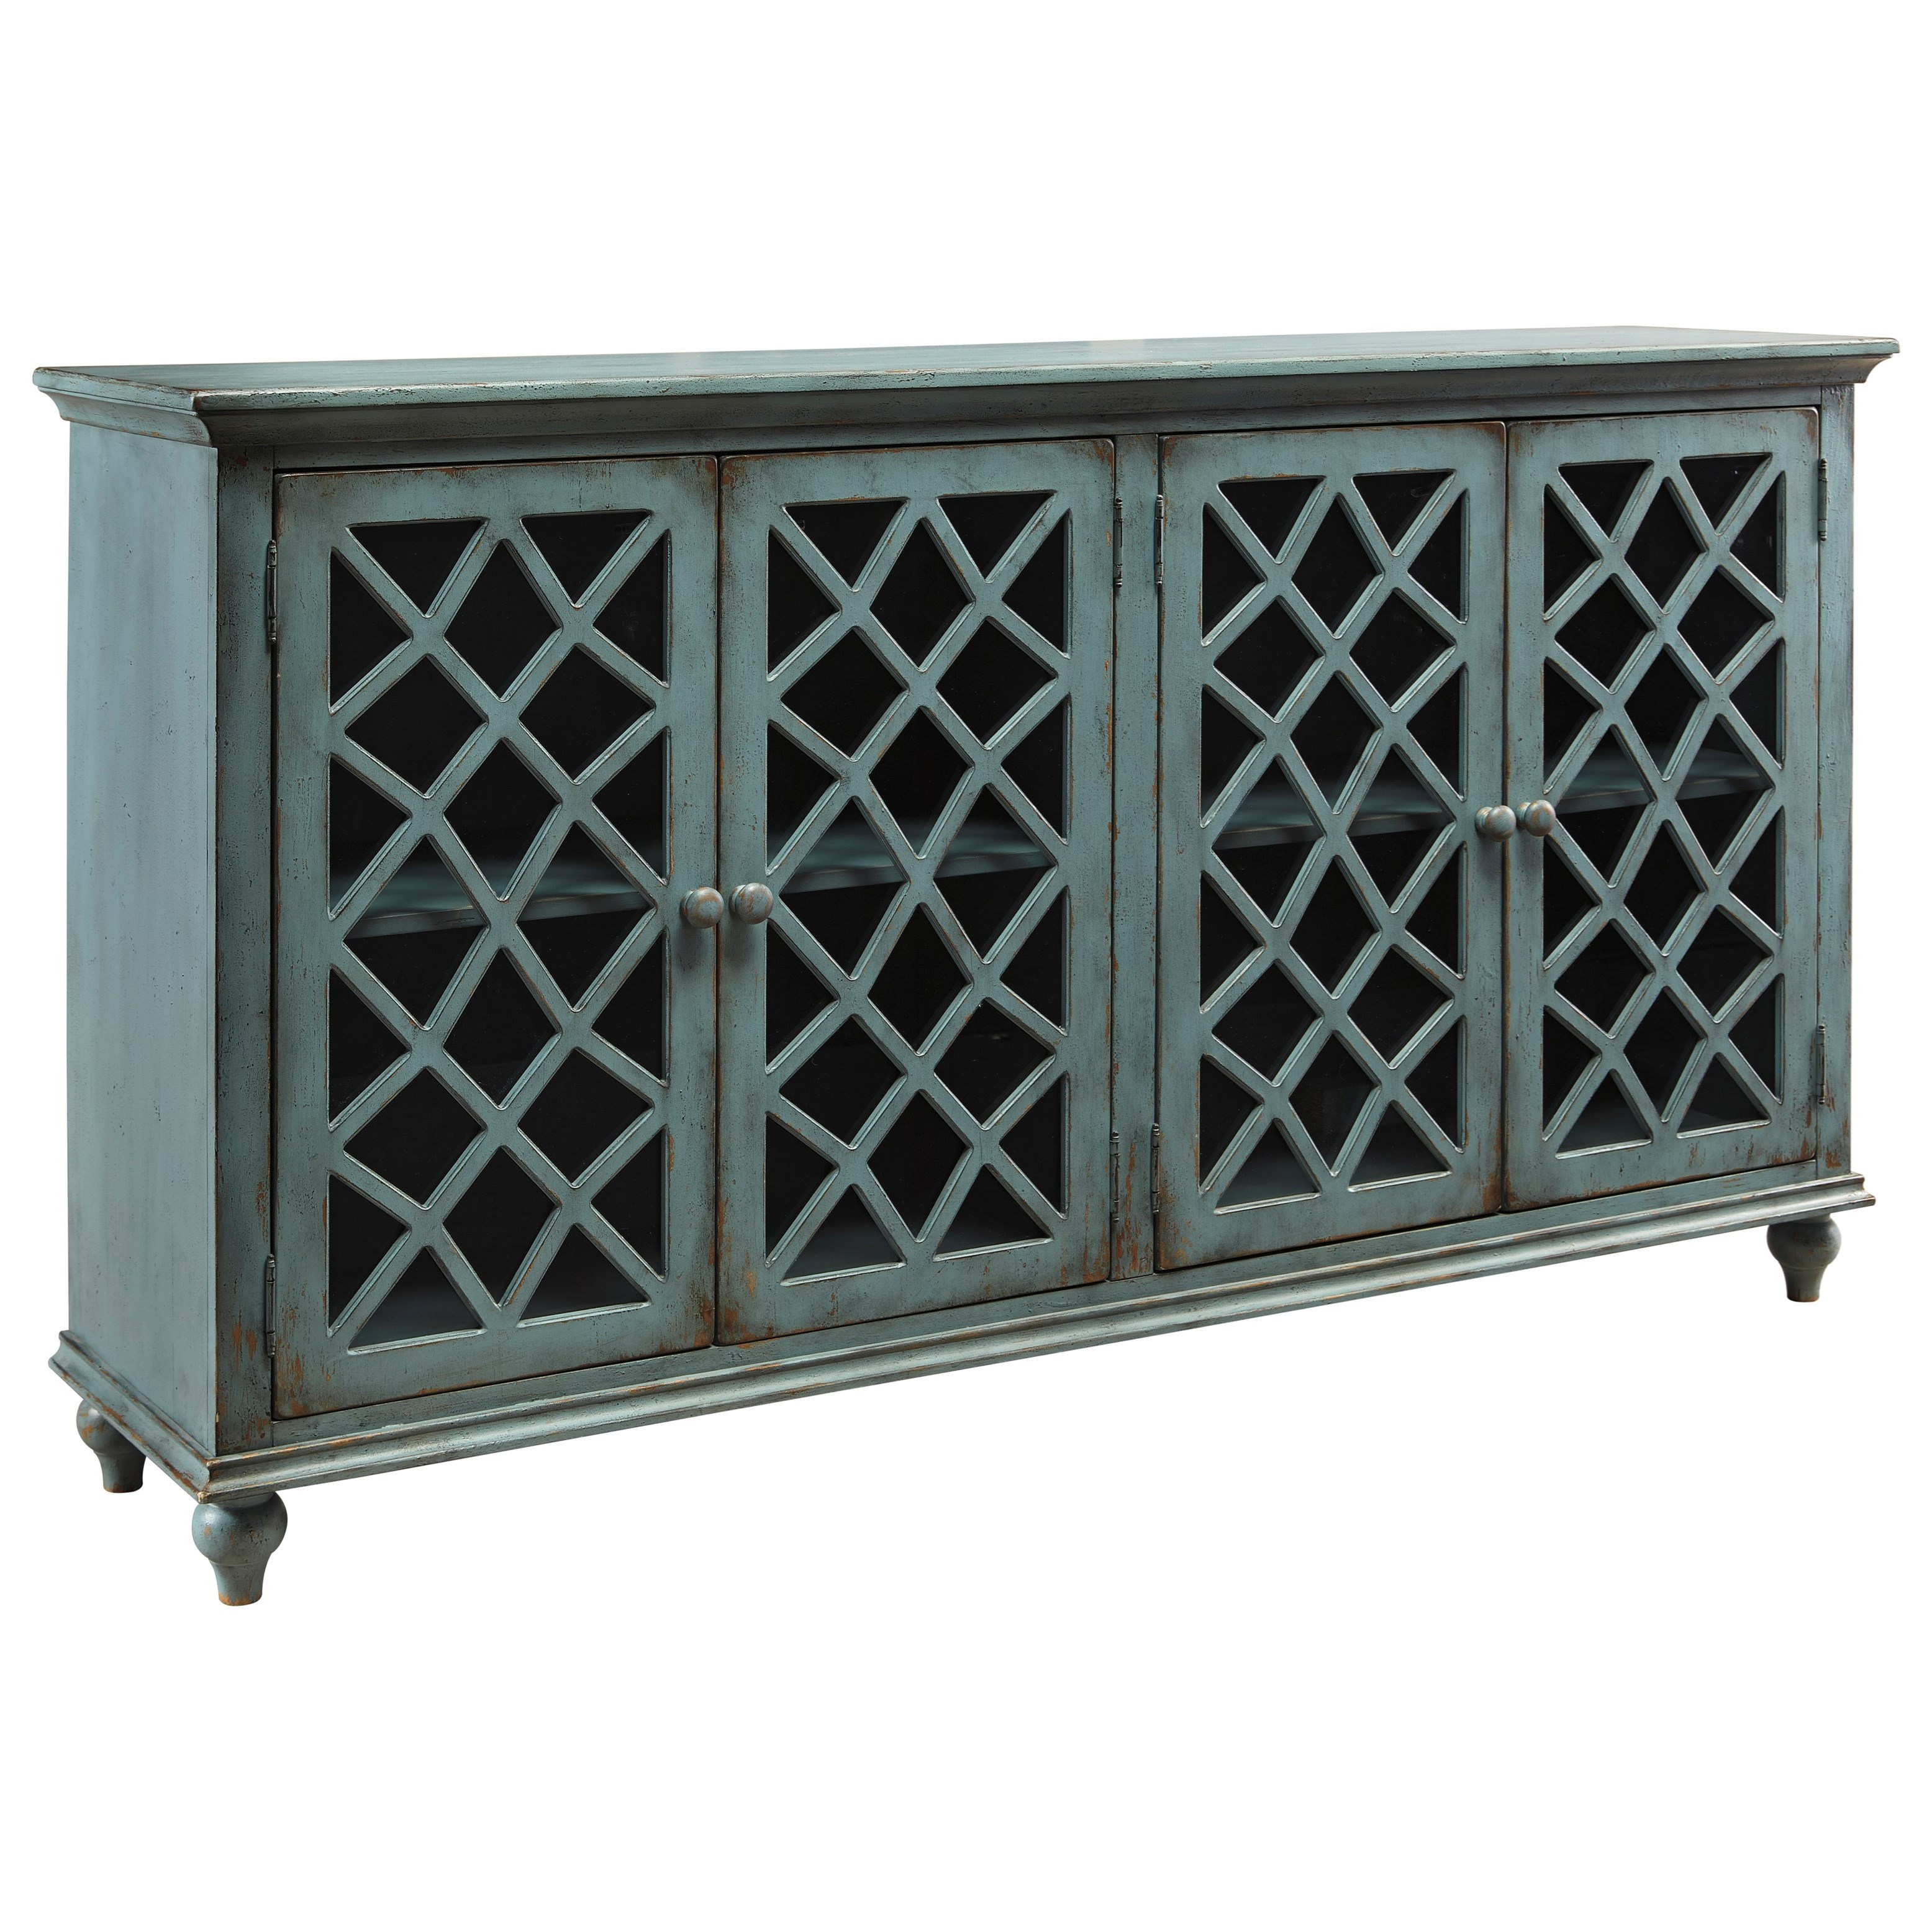 Signature Design by Ashley Mirimyn Door Accent Cabinet - Item Number: T505-762